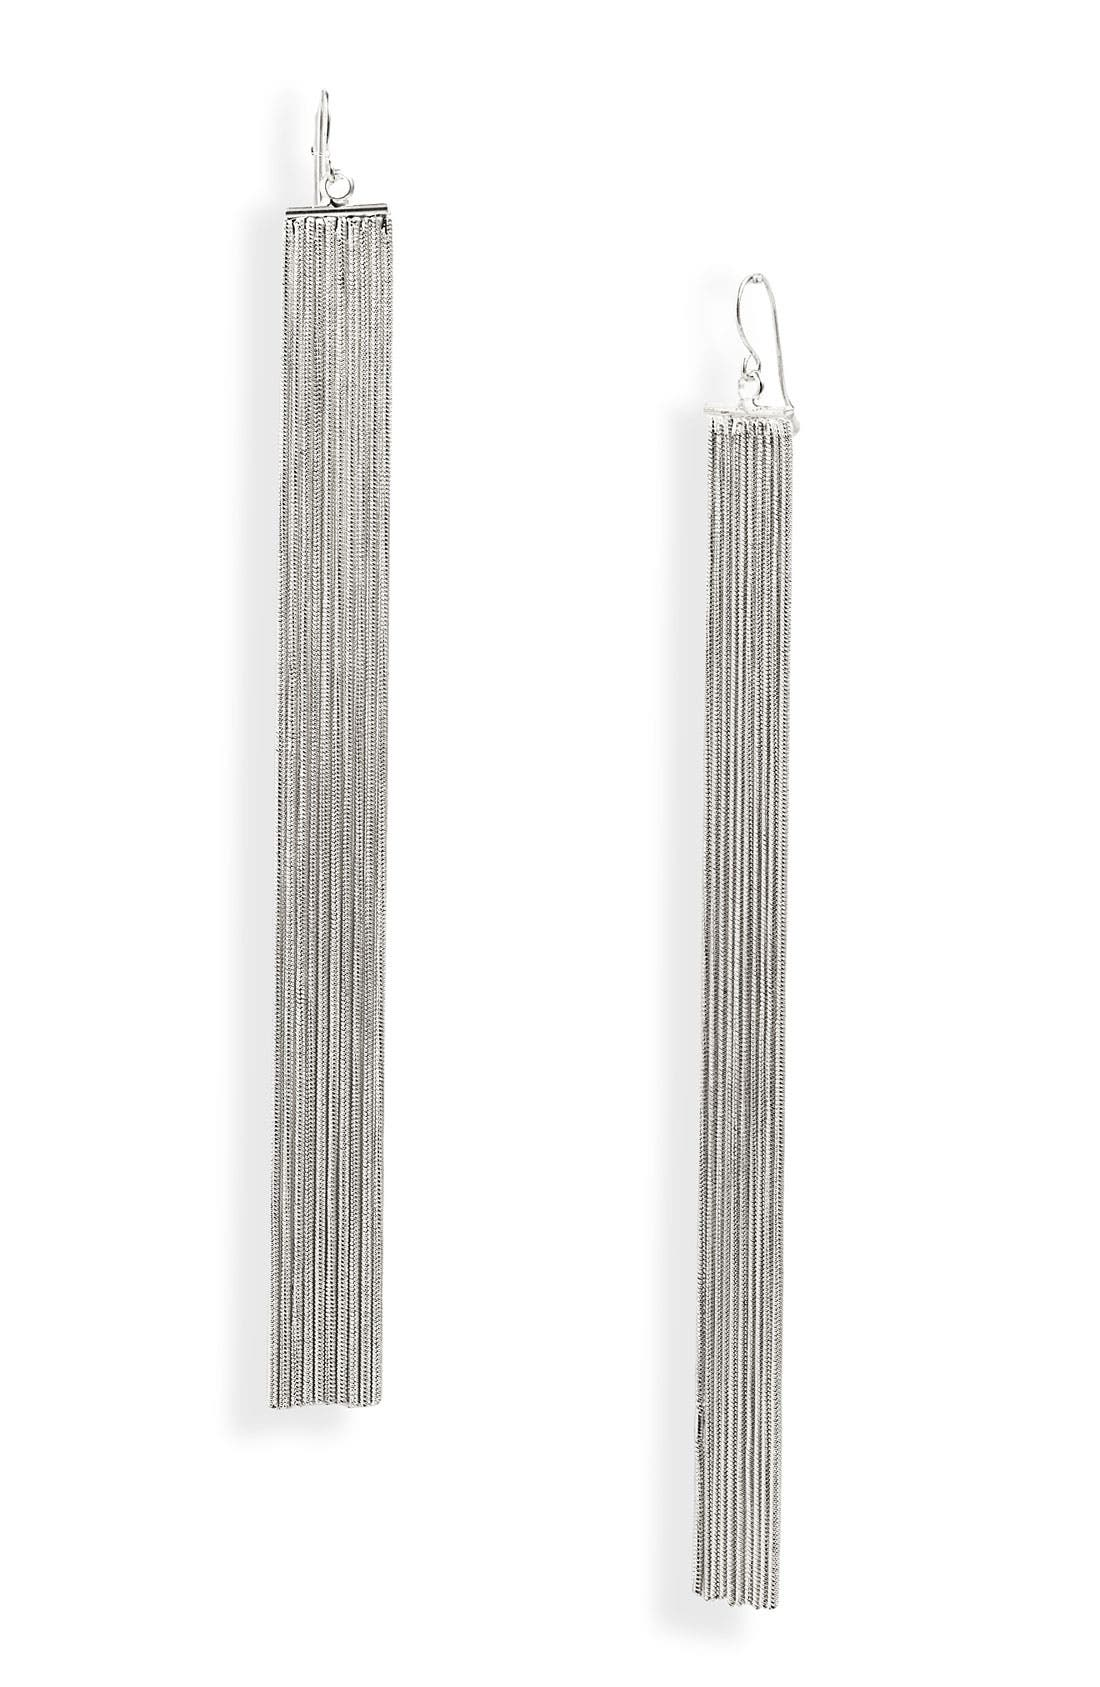 Alternate Image 1 Selected - Natasha Couture Long Fringe Earrings